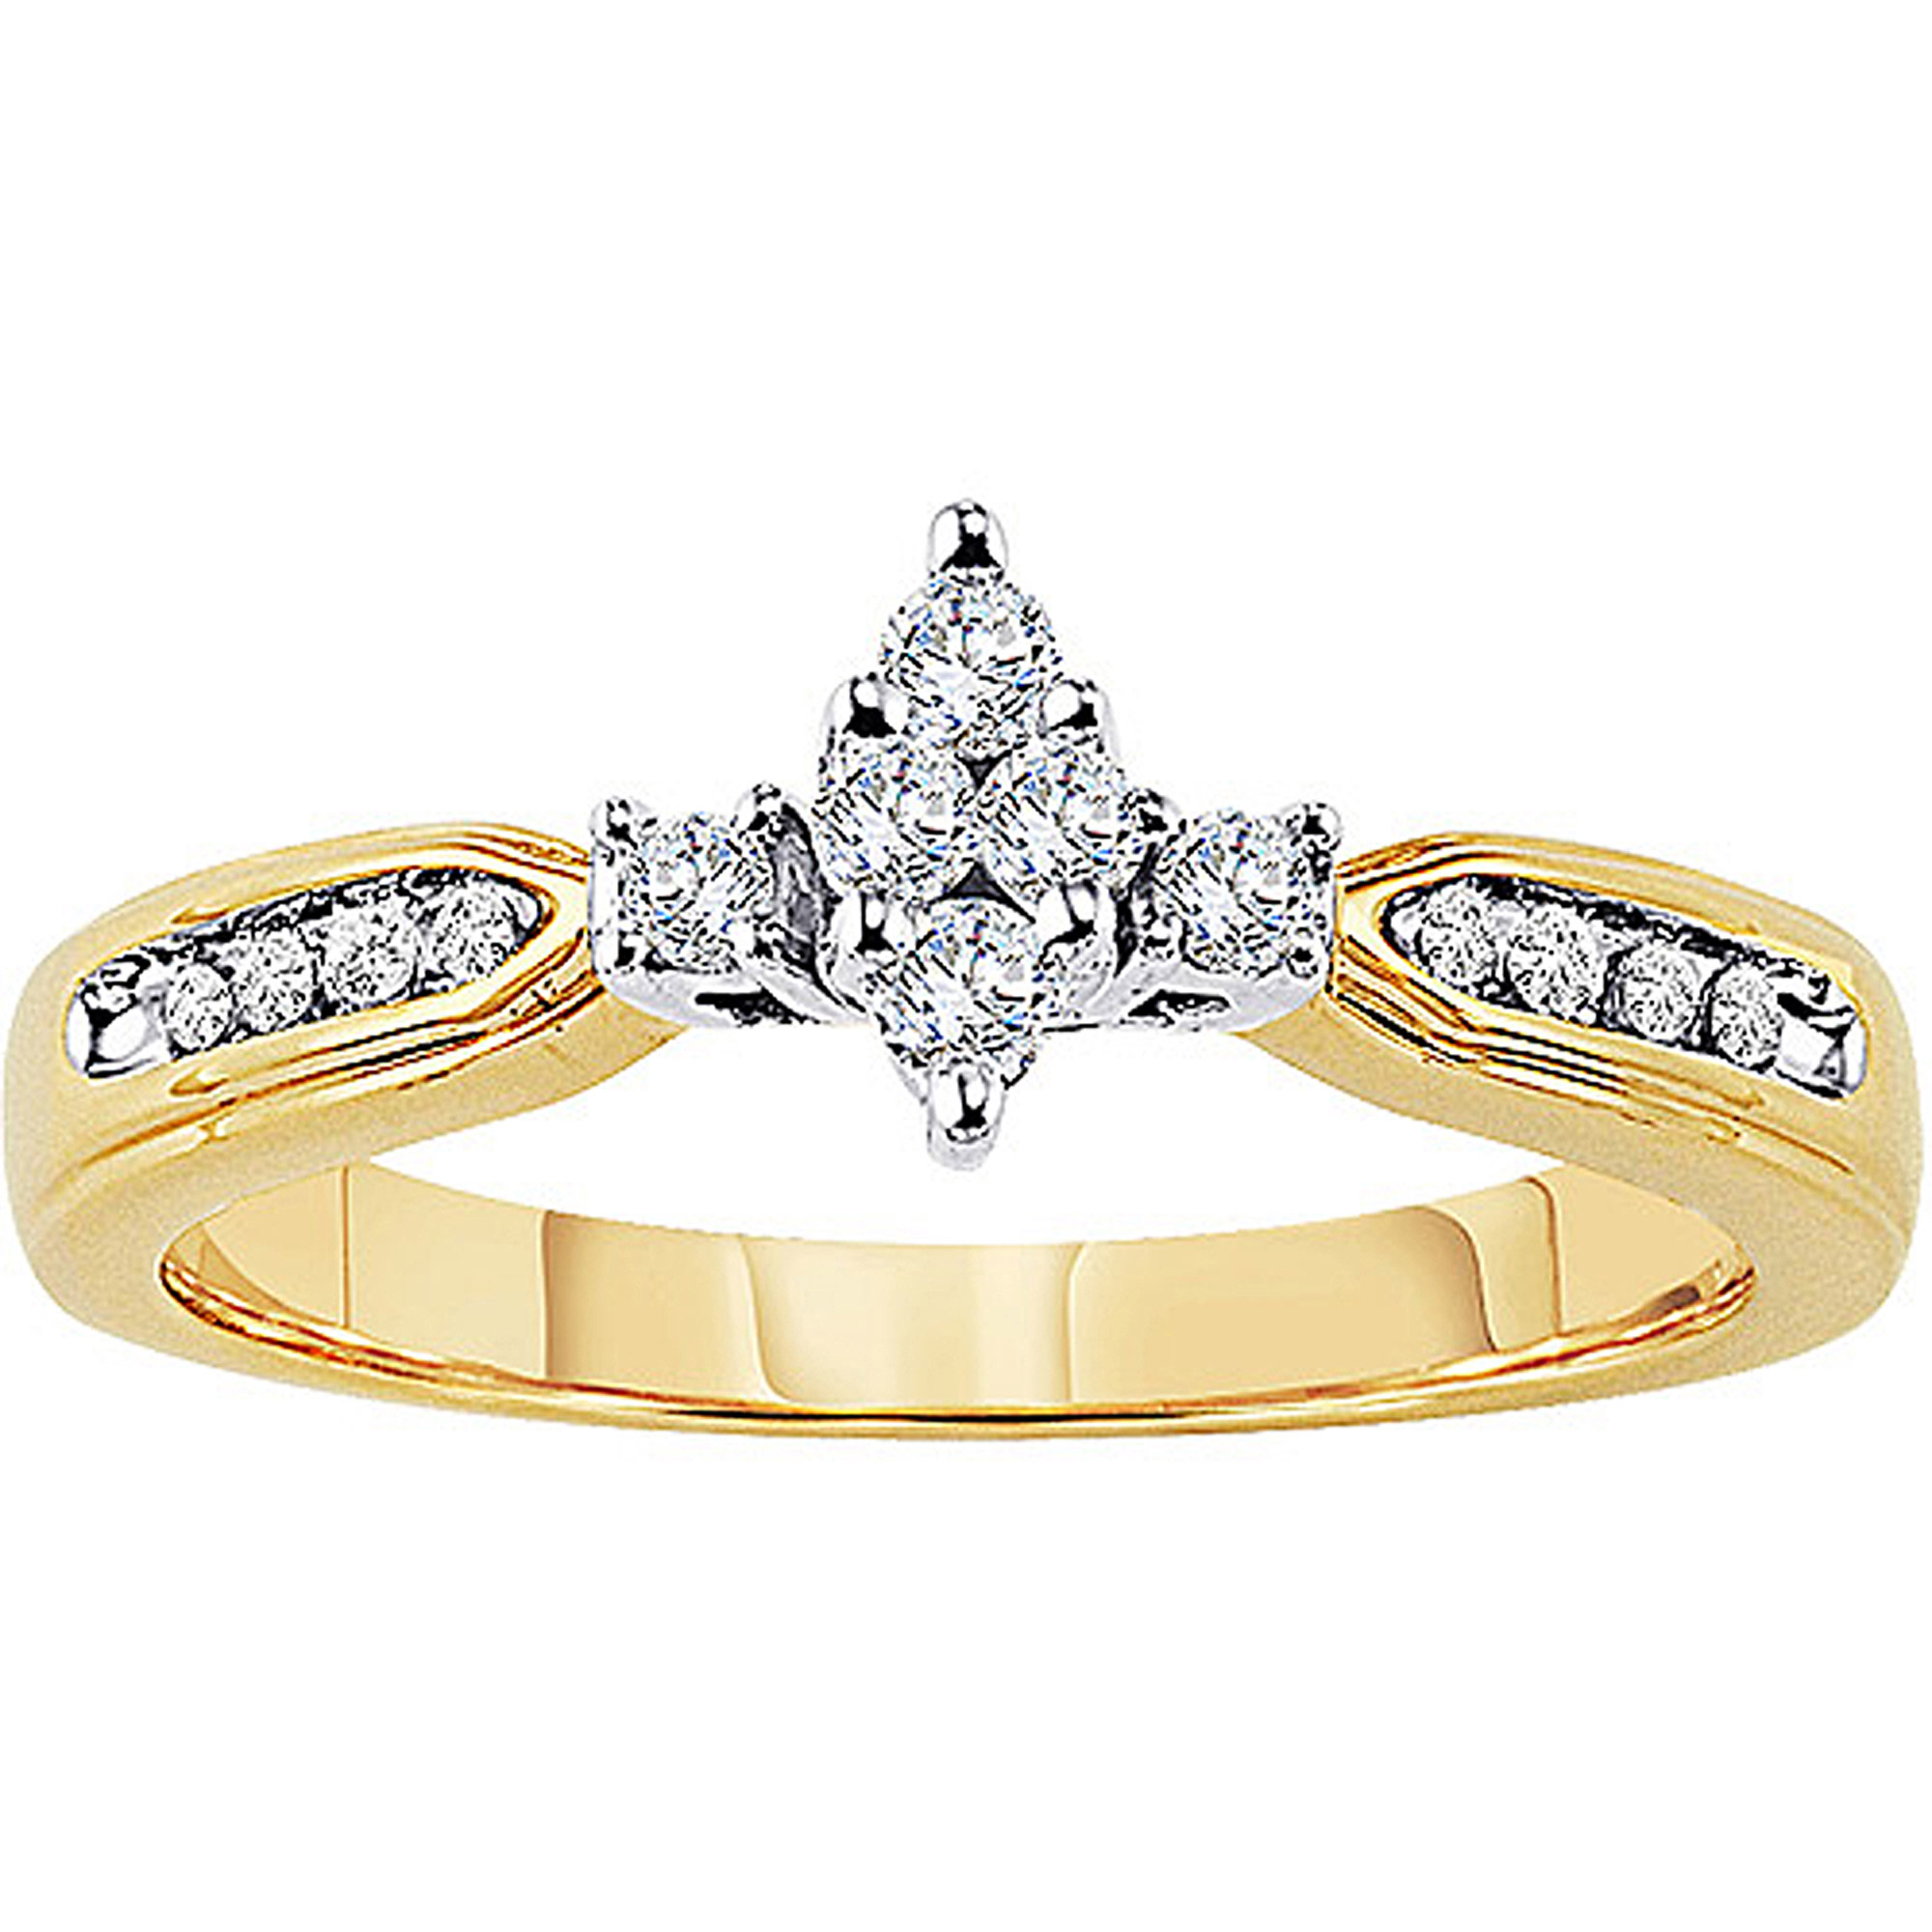 jewelry today white by keepsake shipping engagement diamond gold trillium infinity tdw miadora rings ring product watches free overstock